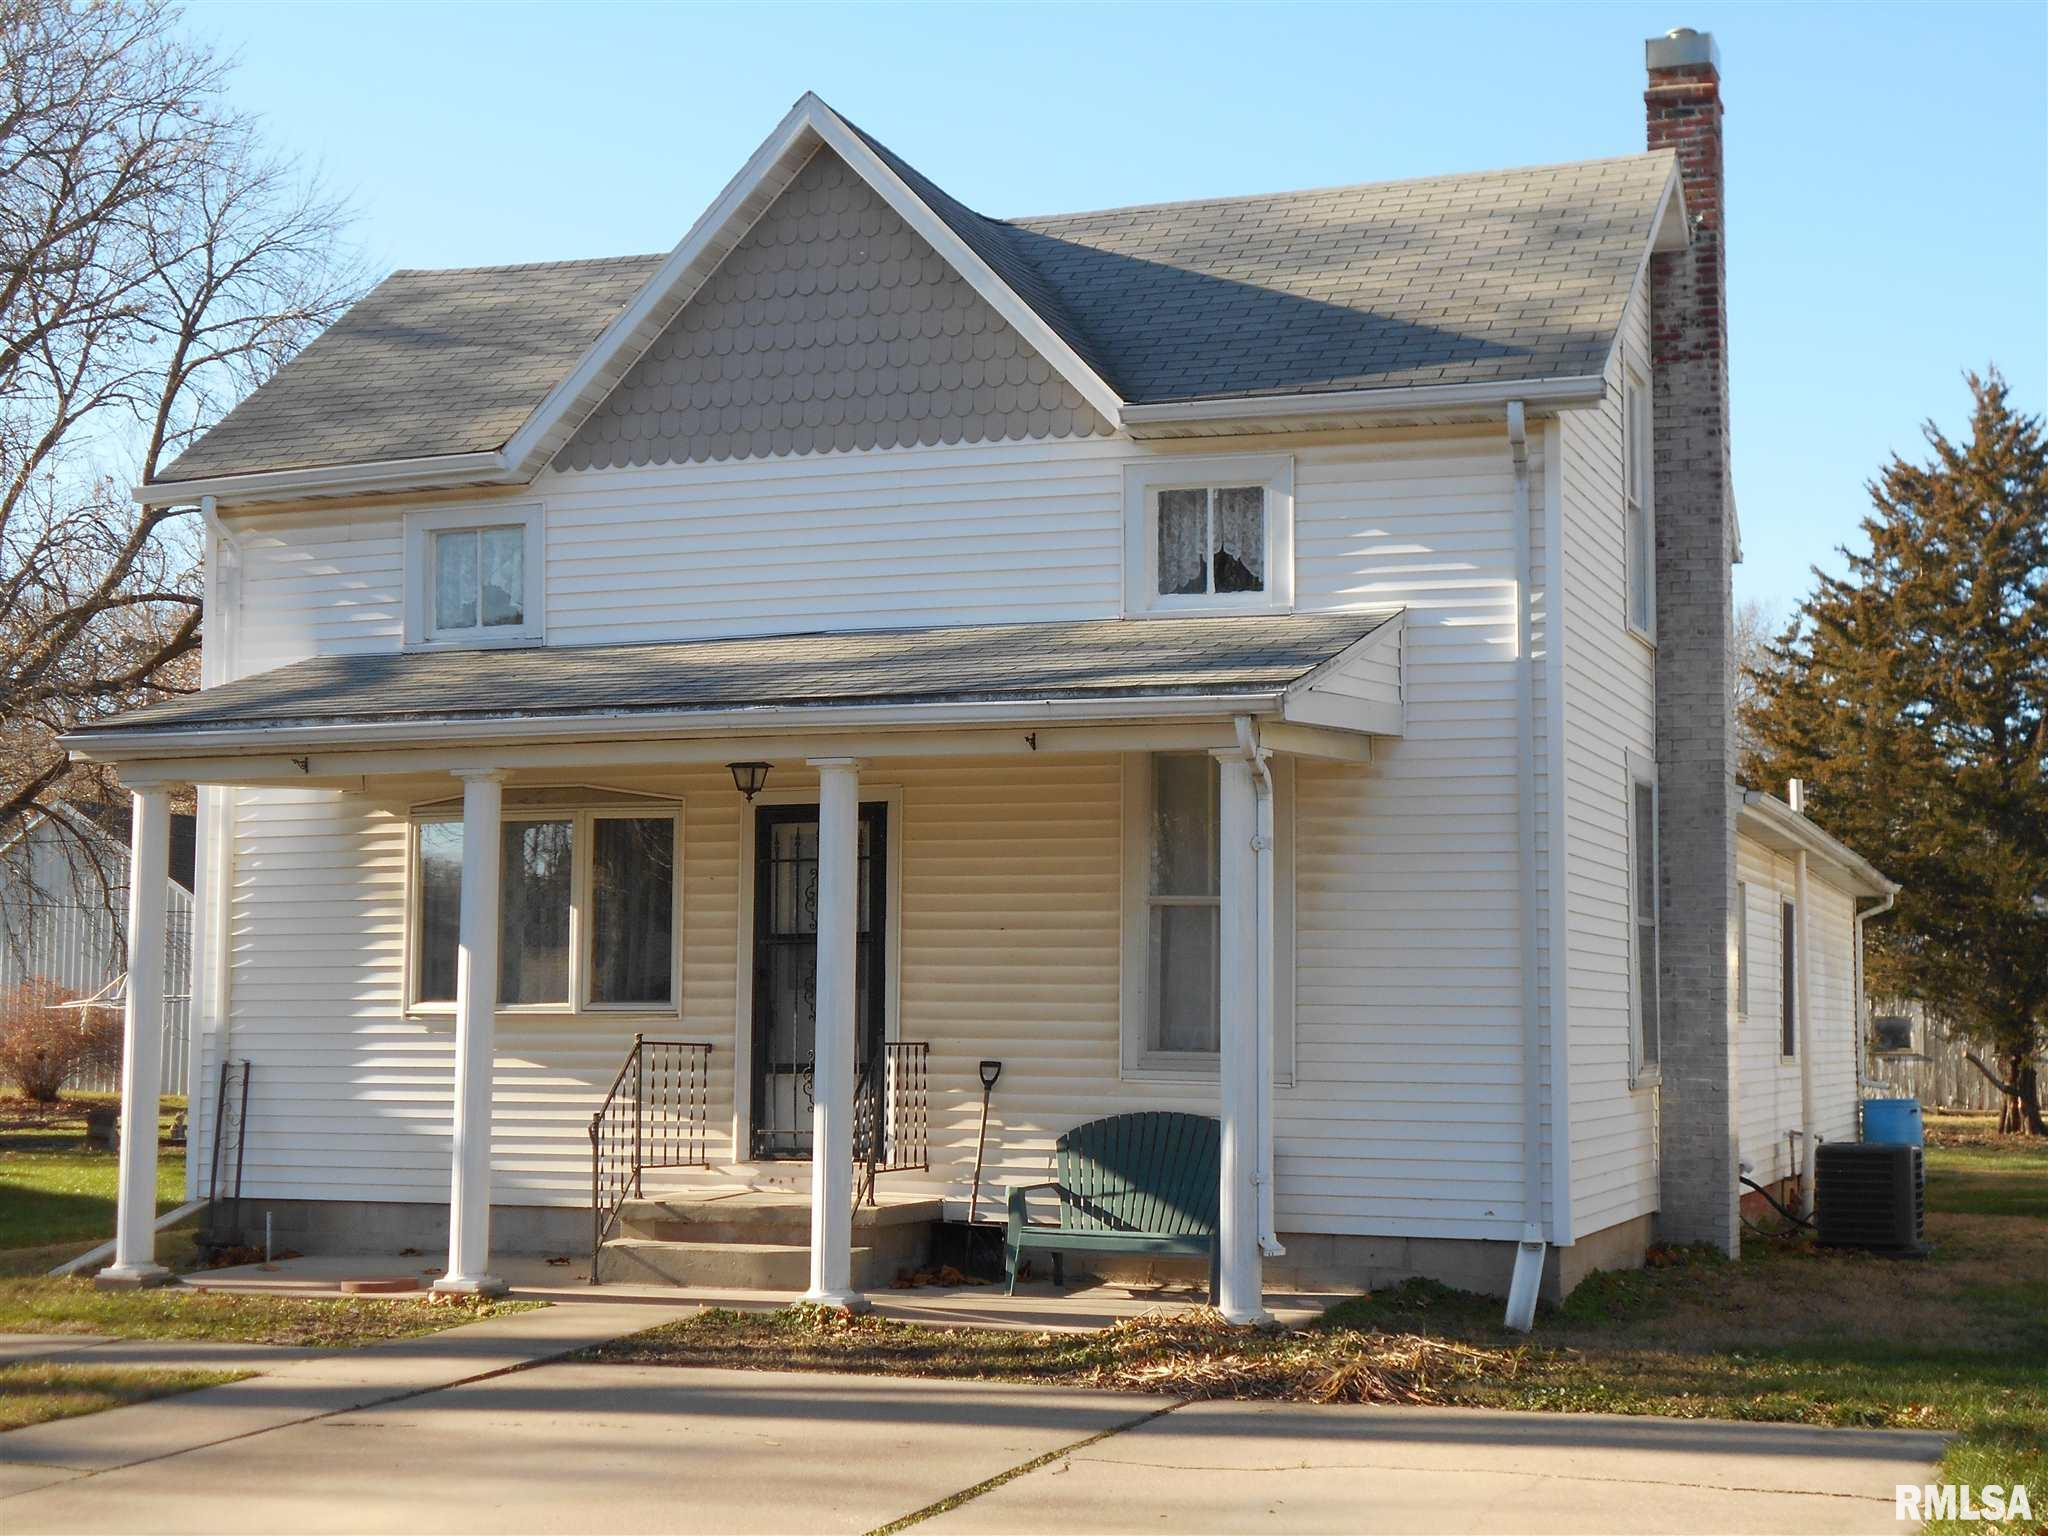 561 N Sperry Property Photo - Bushnell, IL real estate listing